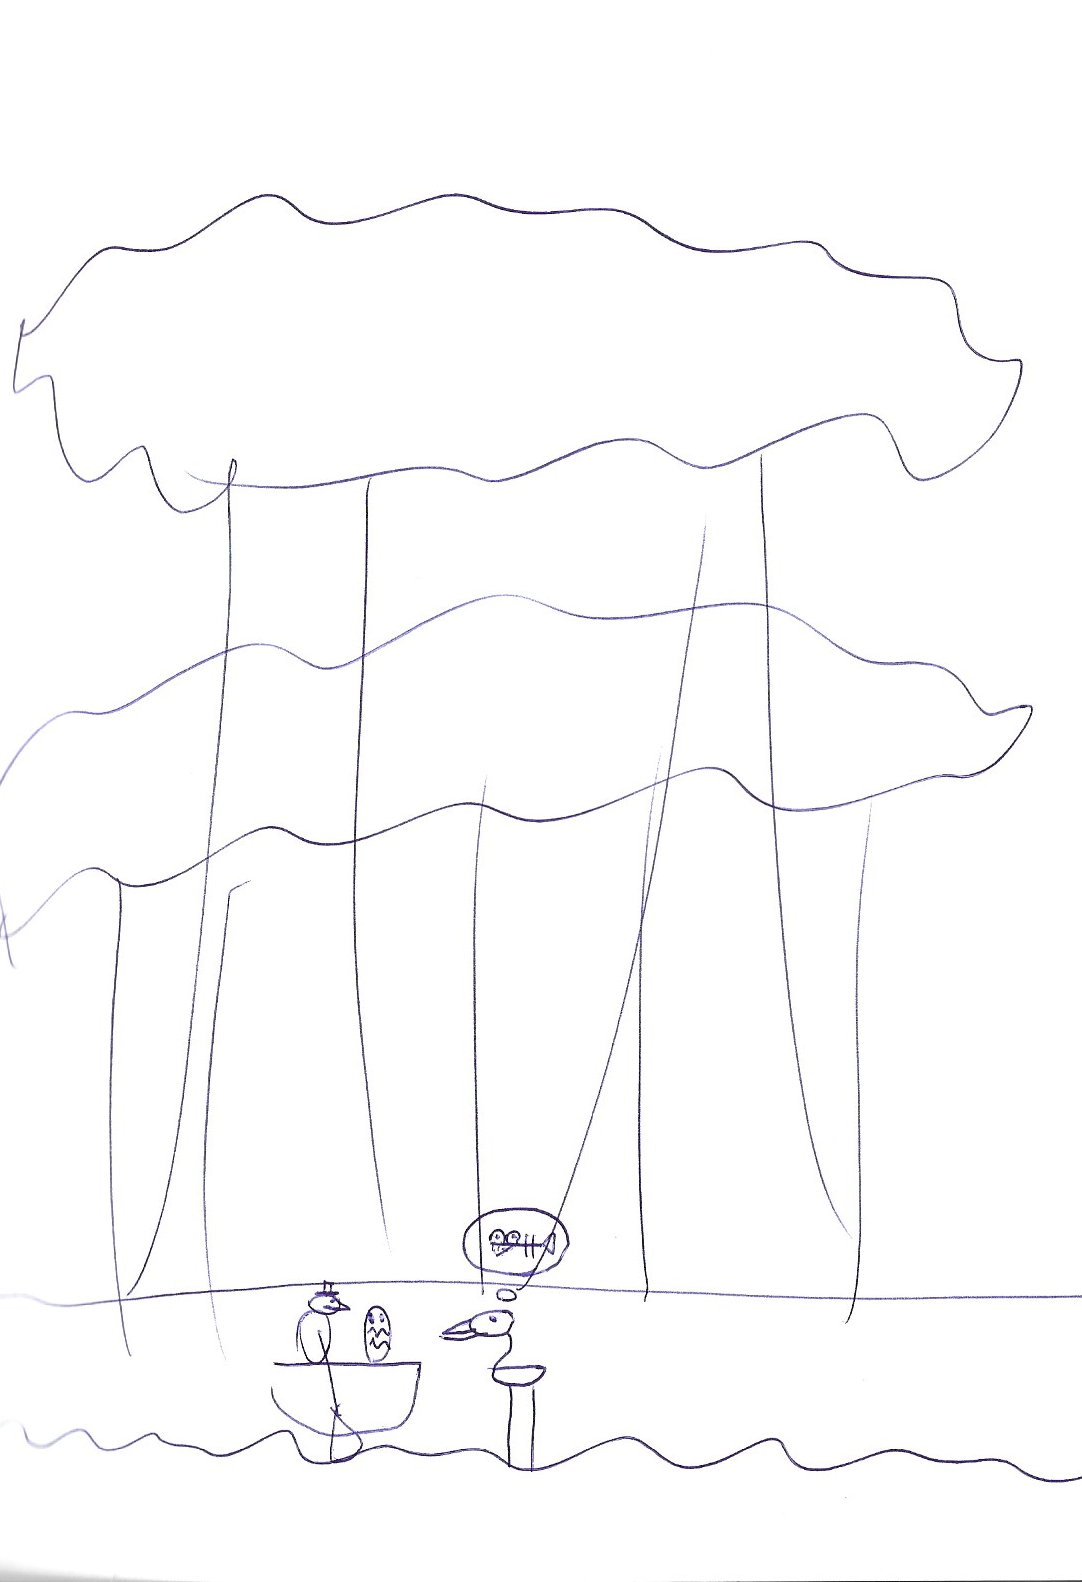 Forest-Lake-Location.png